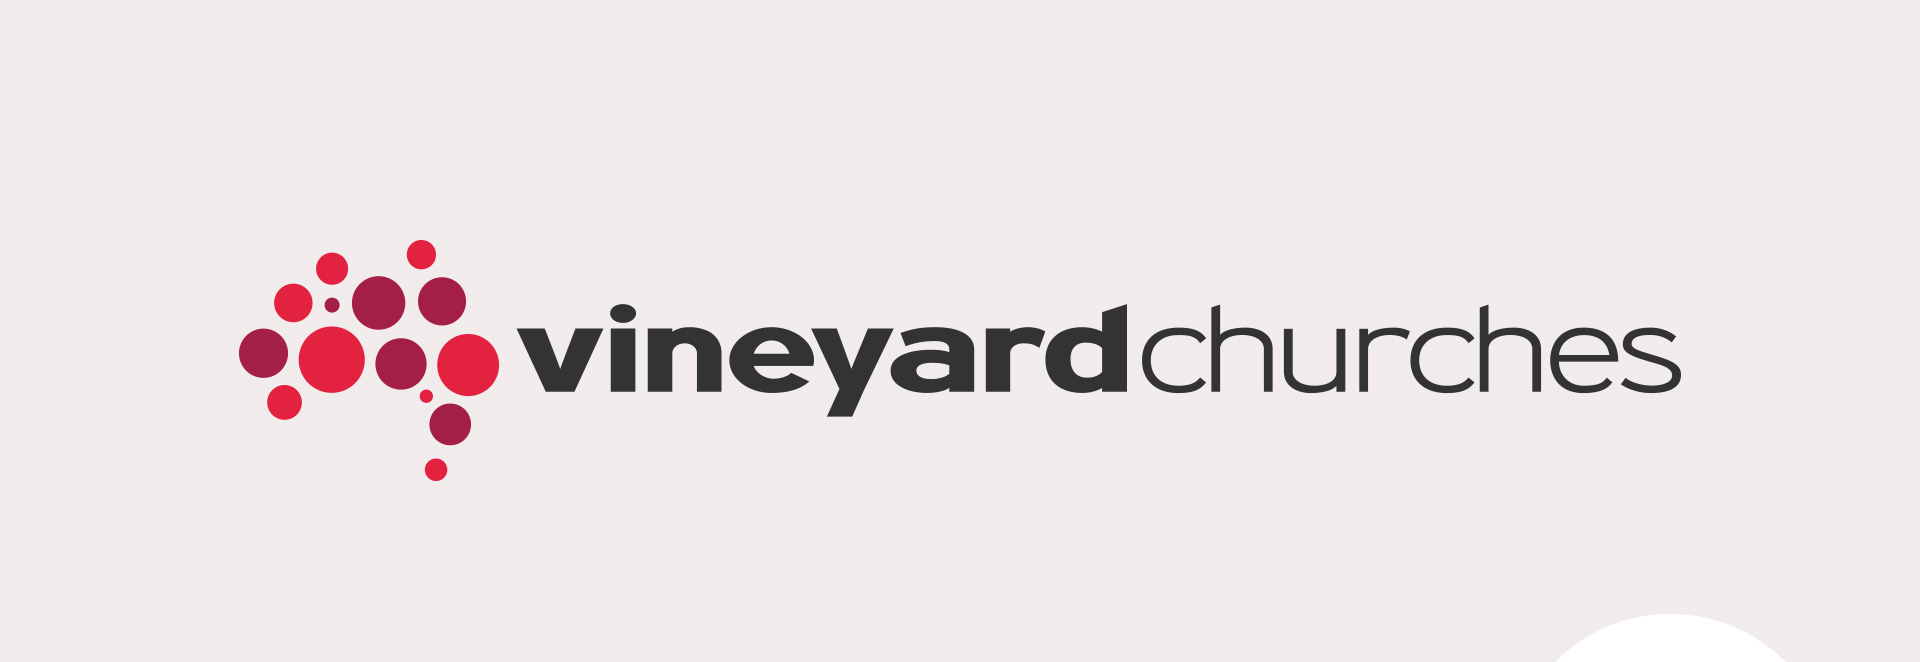 Vineyard Churches Logo